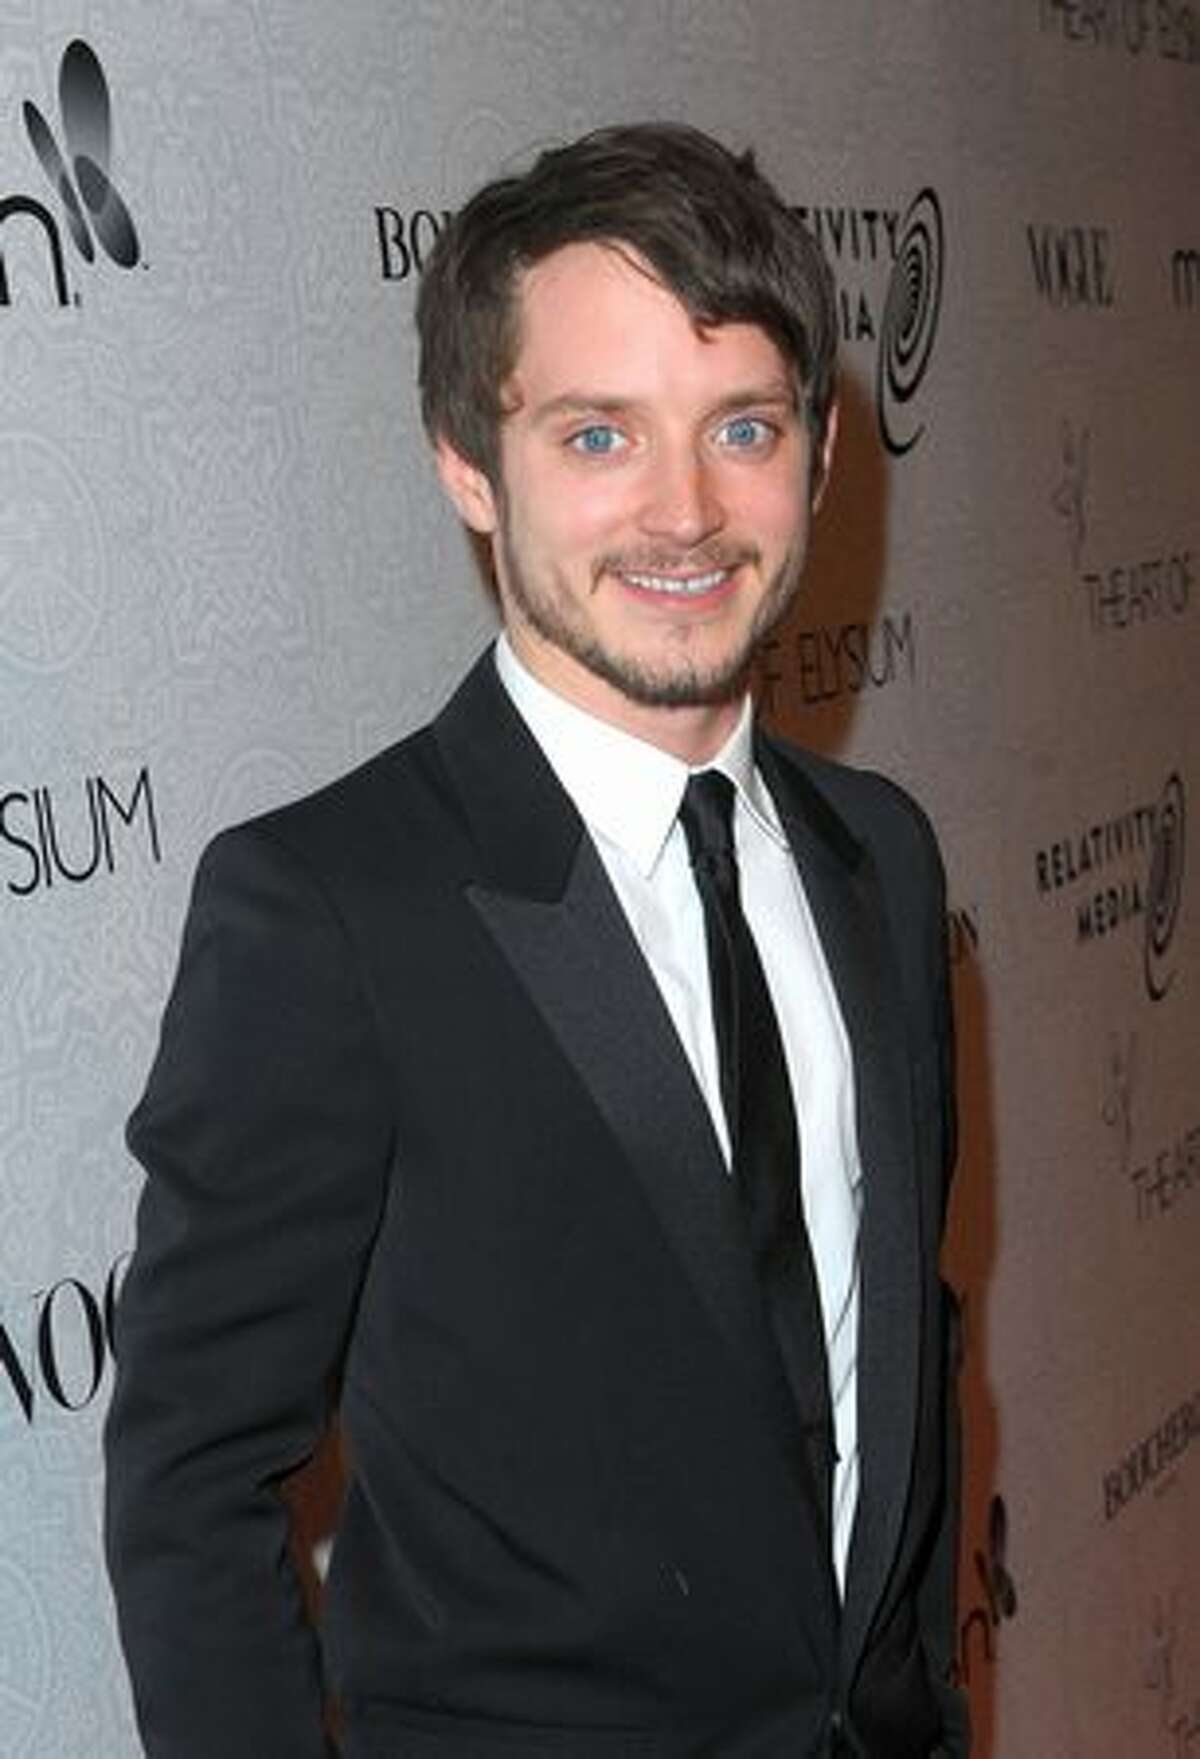 Actor Elijah Wood arrives at The Art of Elysium's third annual Black Tie Charity Gala, named